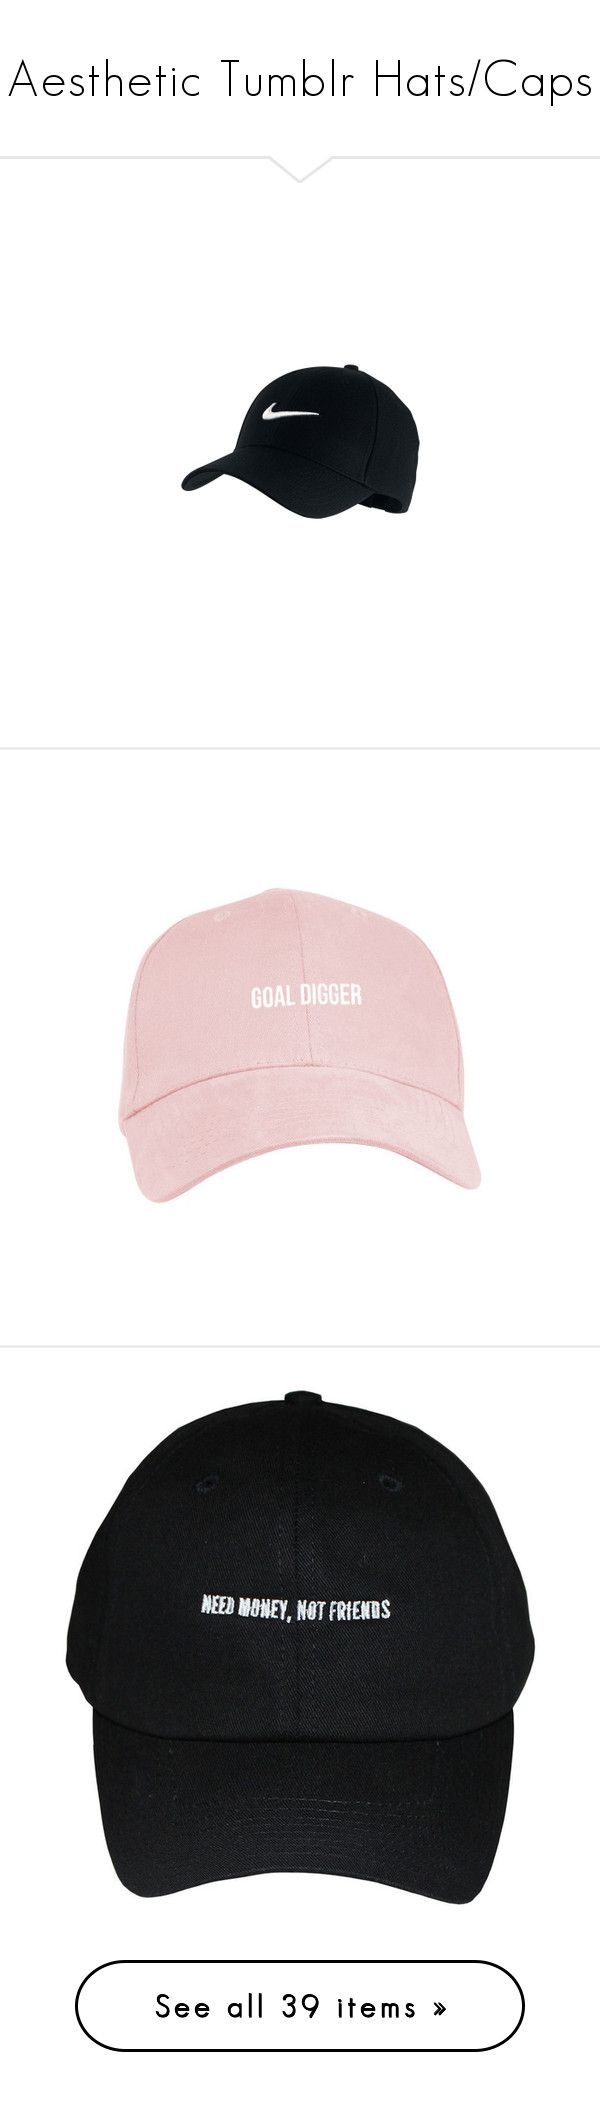 """Aesthetic Tumblr Hats/Caps"" by megsmulroy ❤ liked on Polyvore featuring accessories, hats, headwear, nike, nike cap, sport caps, nike hat, sports hats, white hat and distressed ball cap"